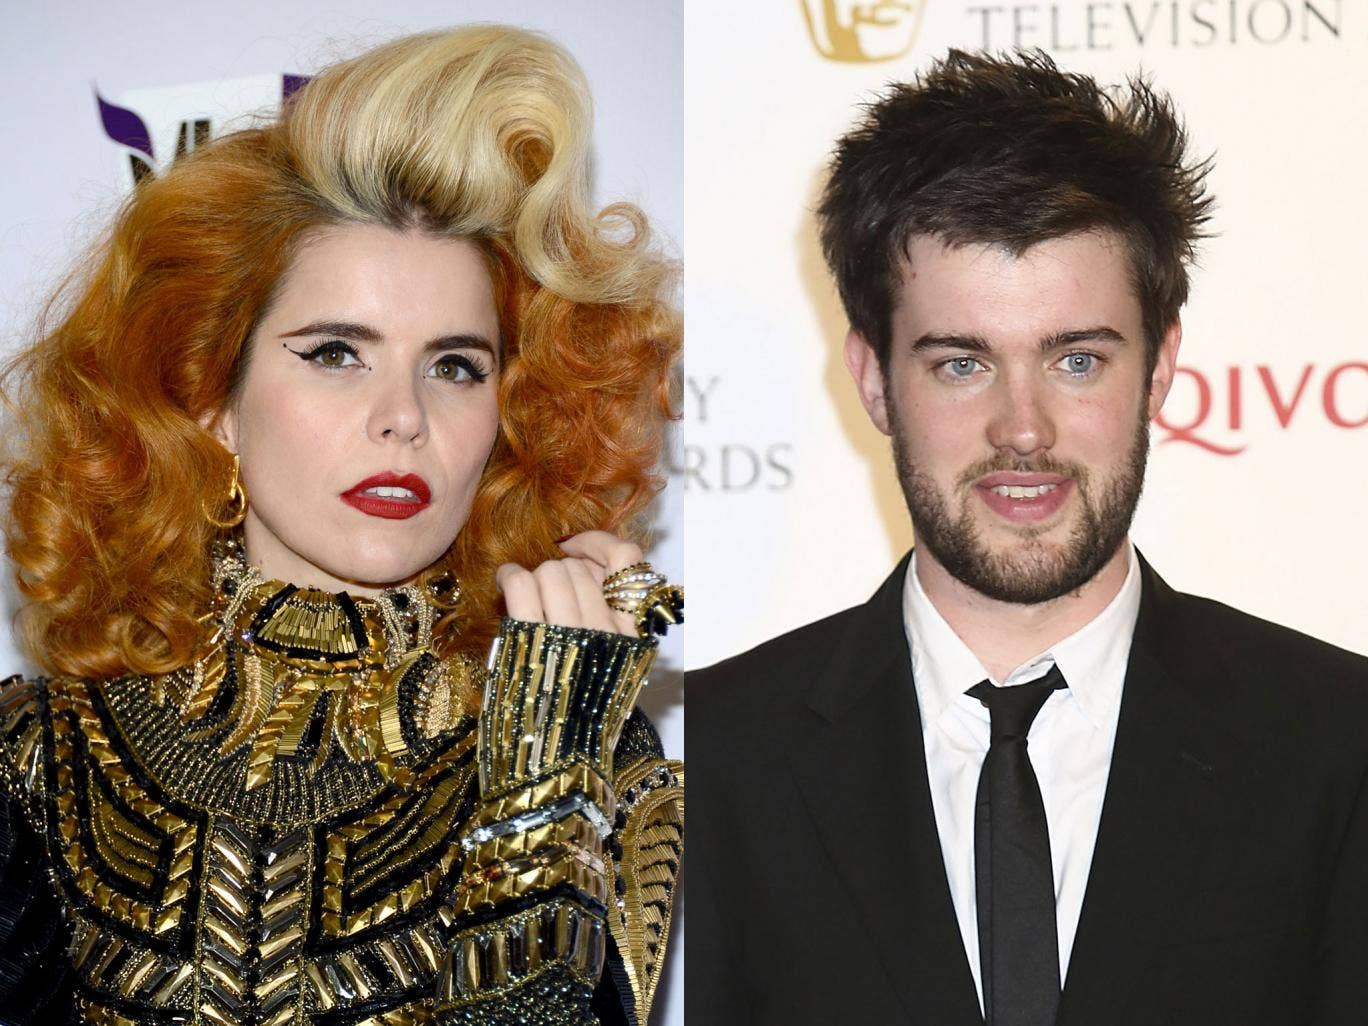 Paloma Faith would put Fifty Shades of Grey in Room 101; comedian Jack Whitehall hates 'glamping'